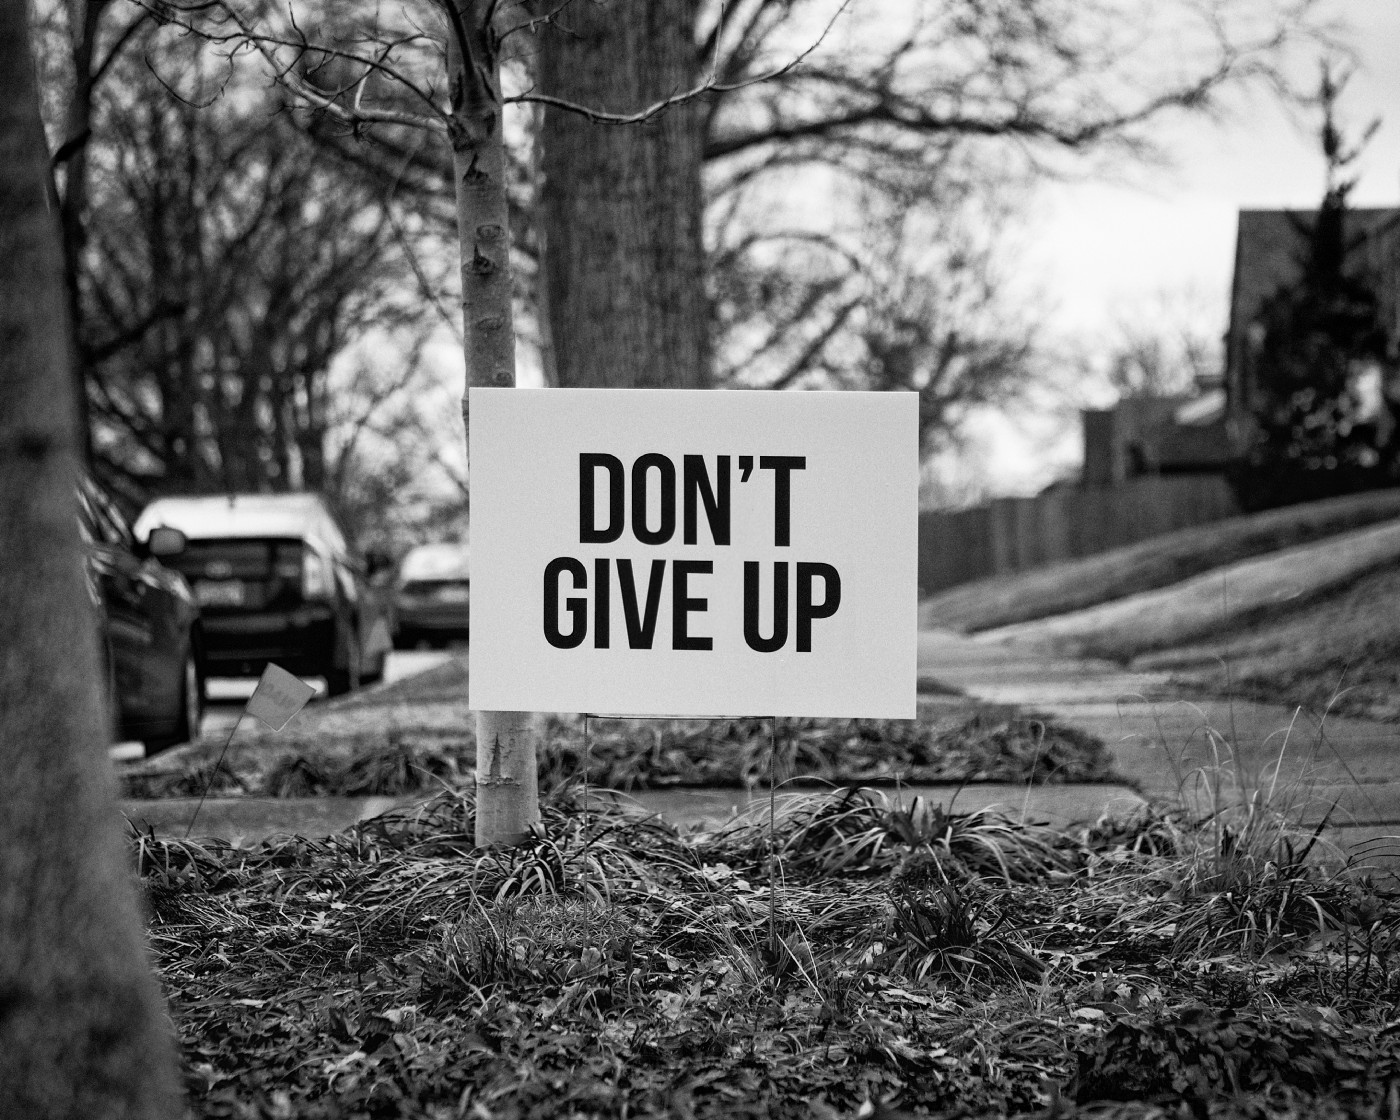 Don't give up sign in a neighborhood black and white.